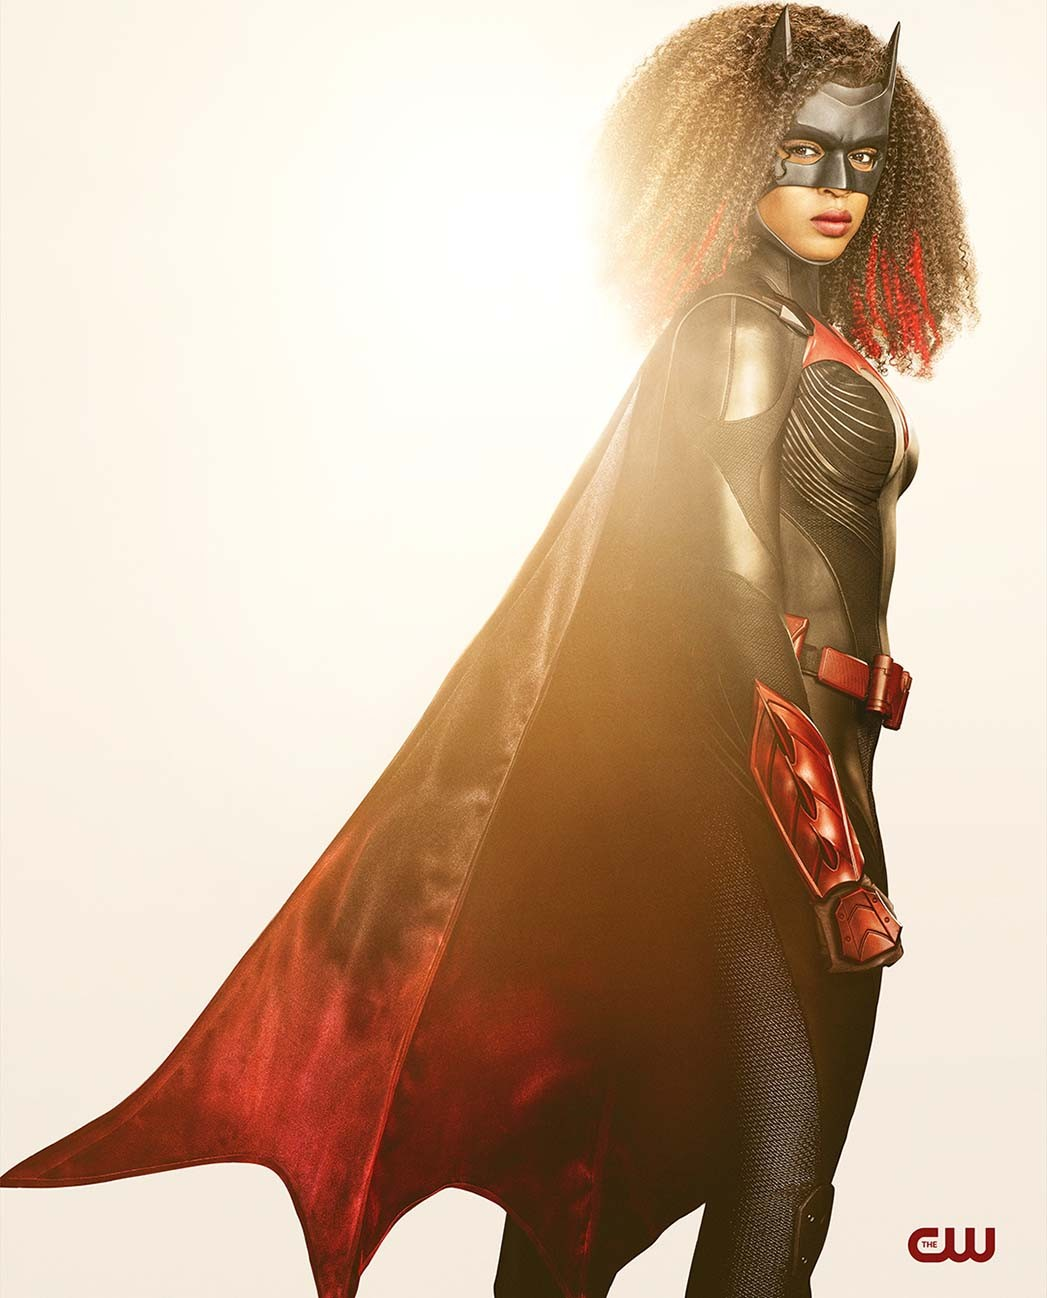 475334_SeOfGvNXg3_the_cw_batwoman_first_look_2_embed_2020_1603737218_compressed.jpg